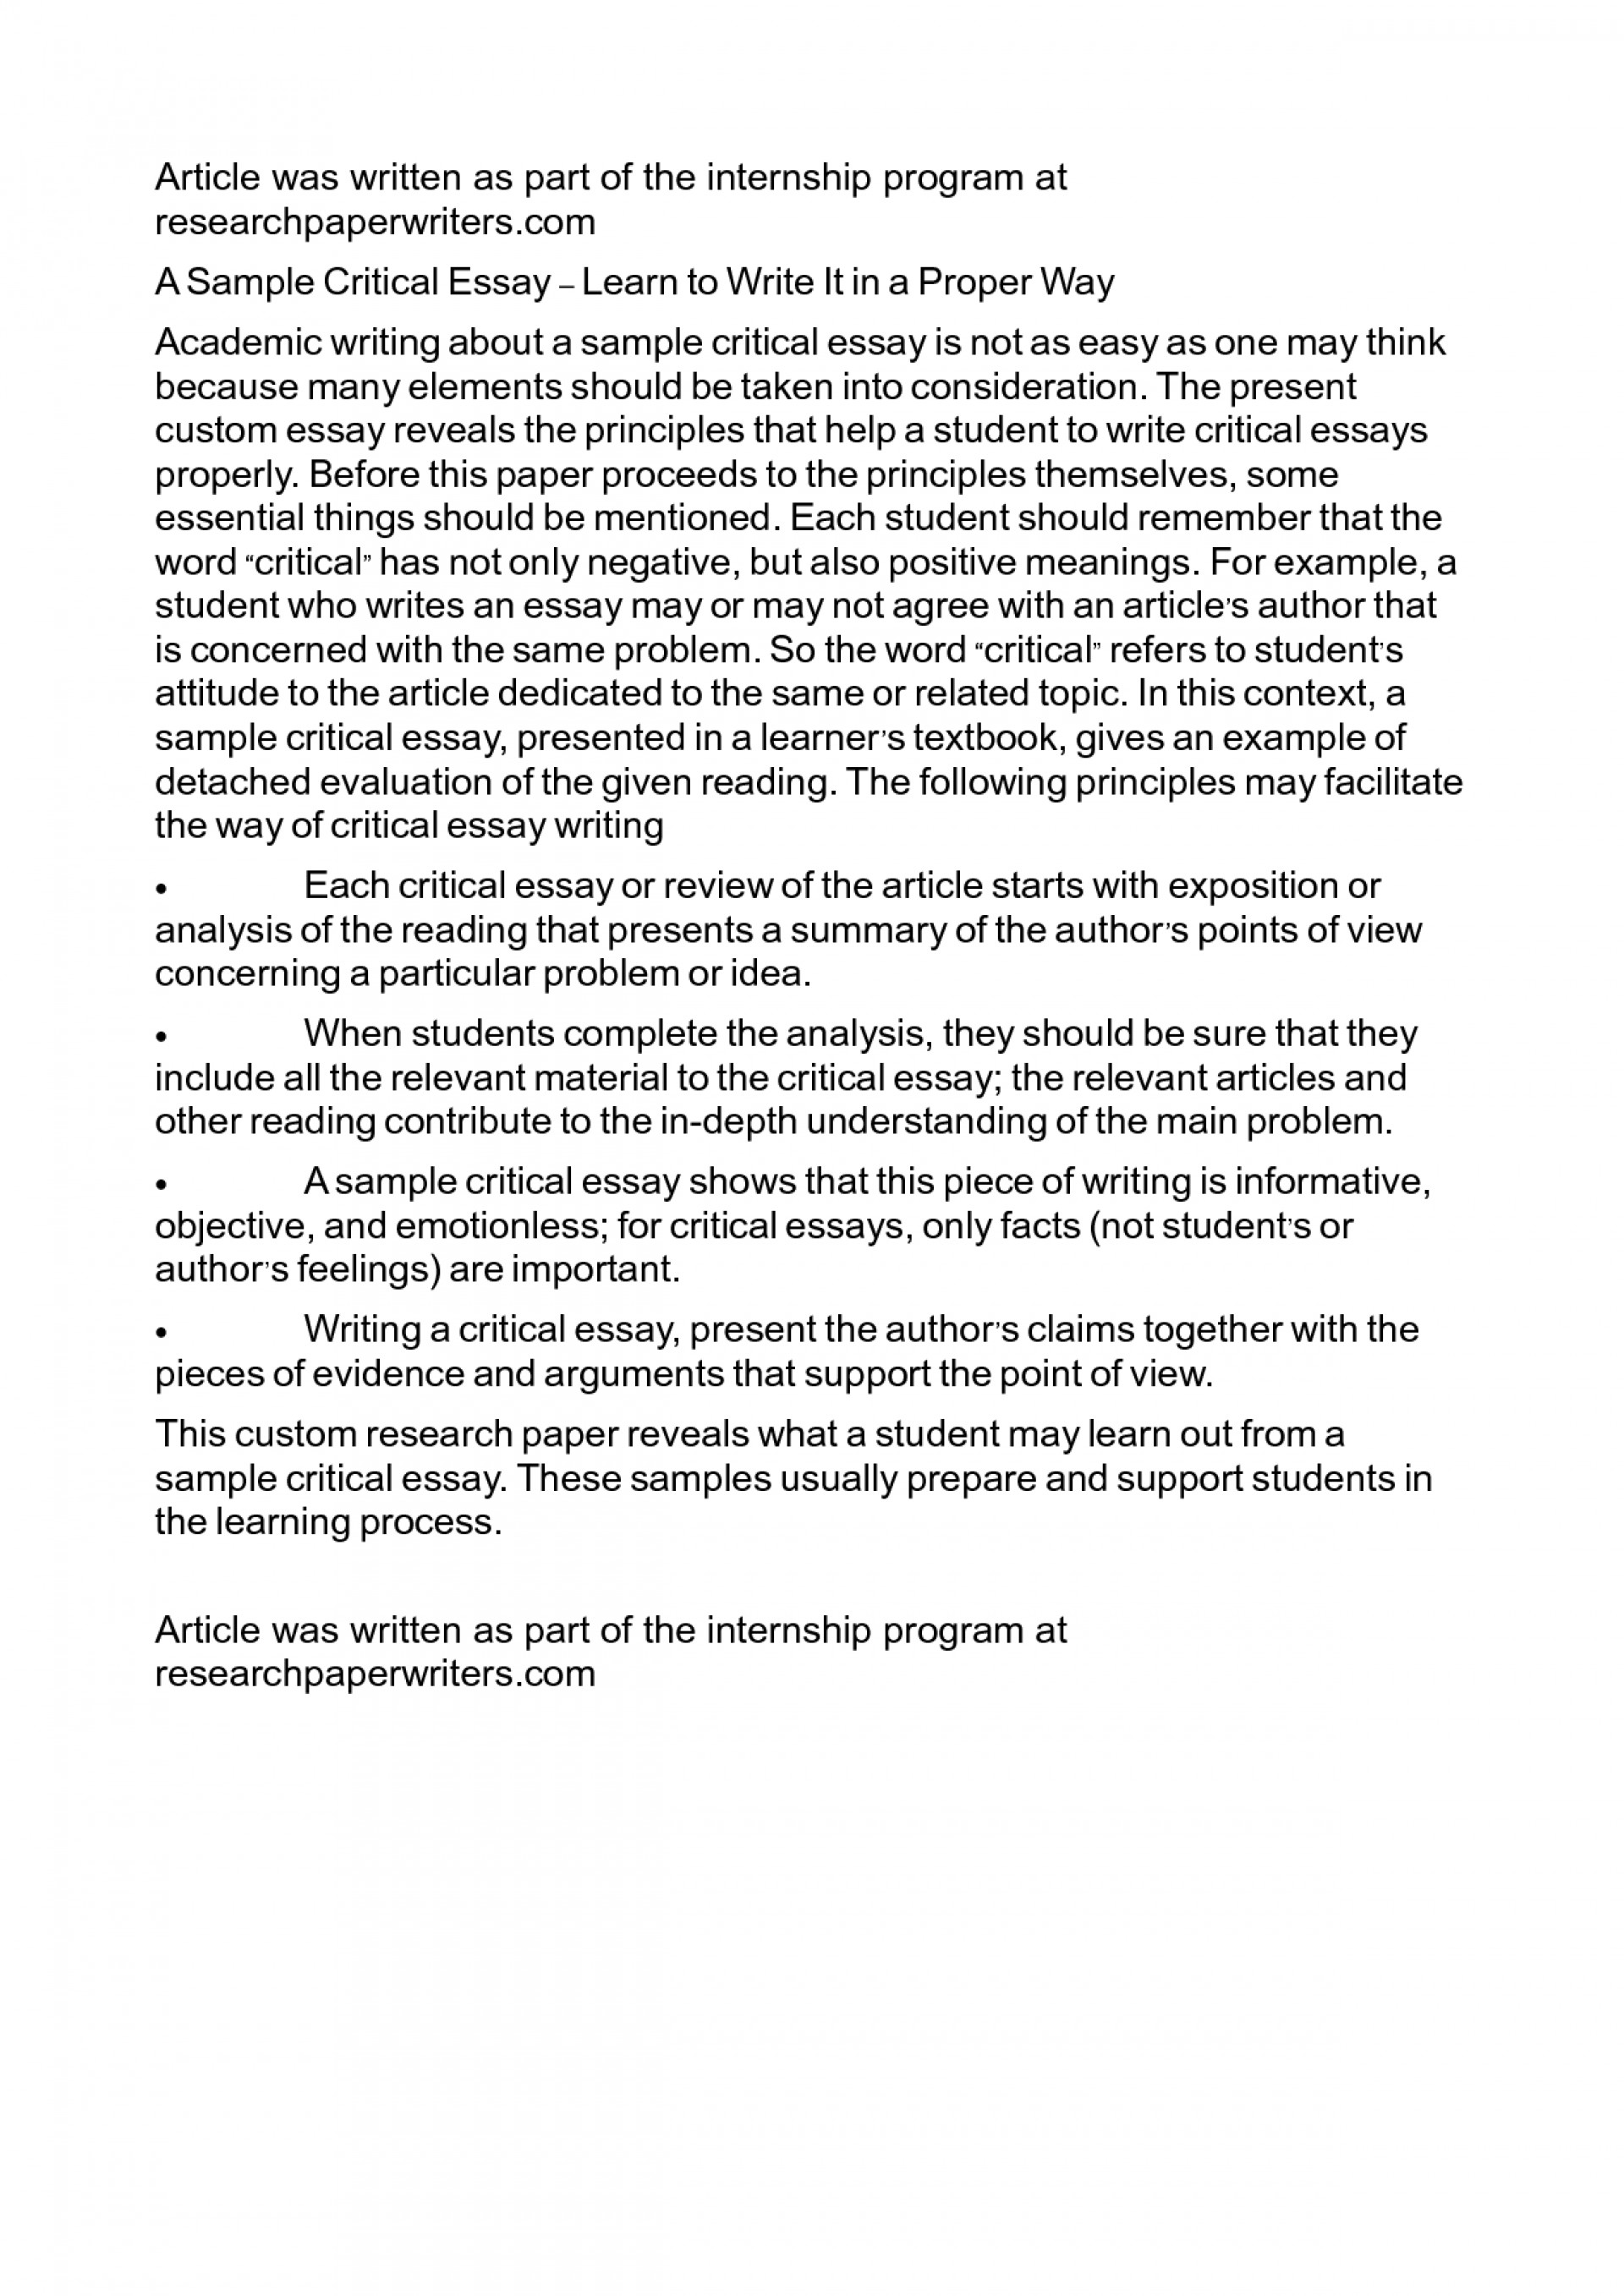 006 Essay Example How To Write Proper Frightening A Good Argumentative Outline Narrative For College 1920